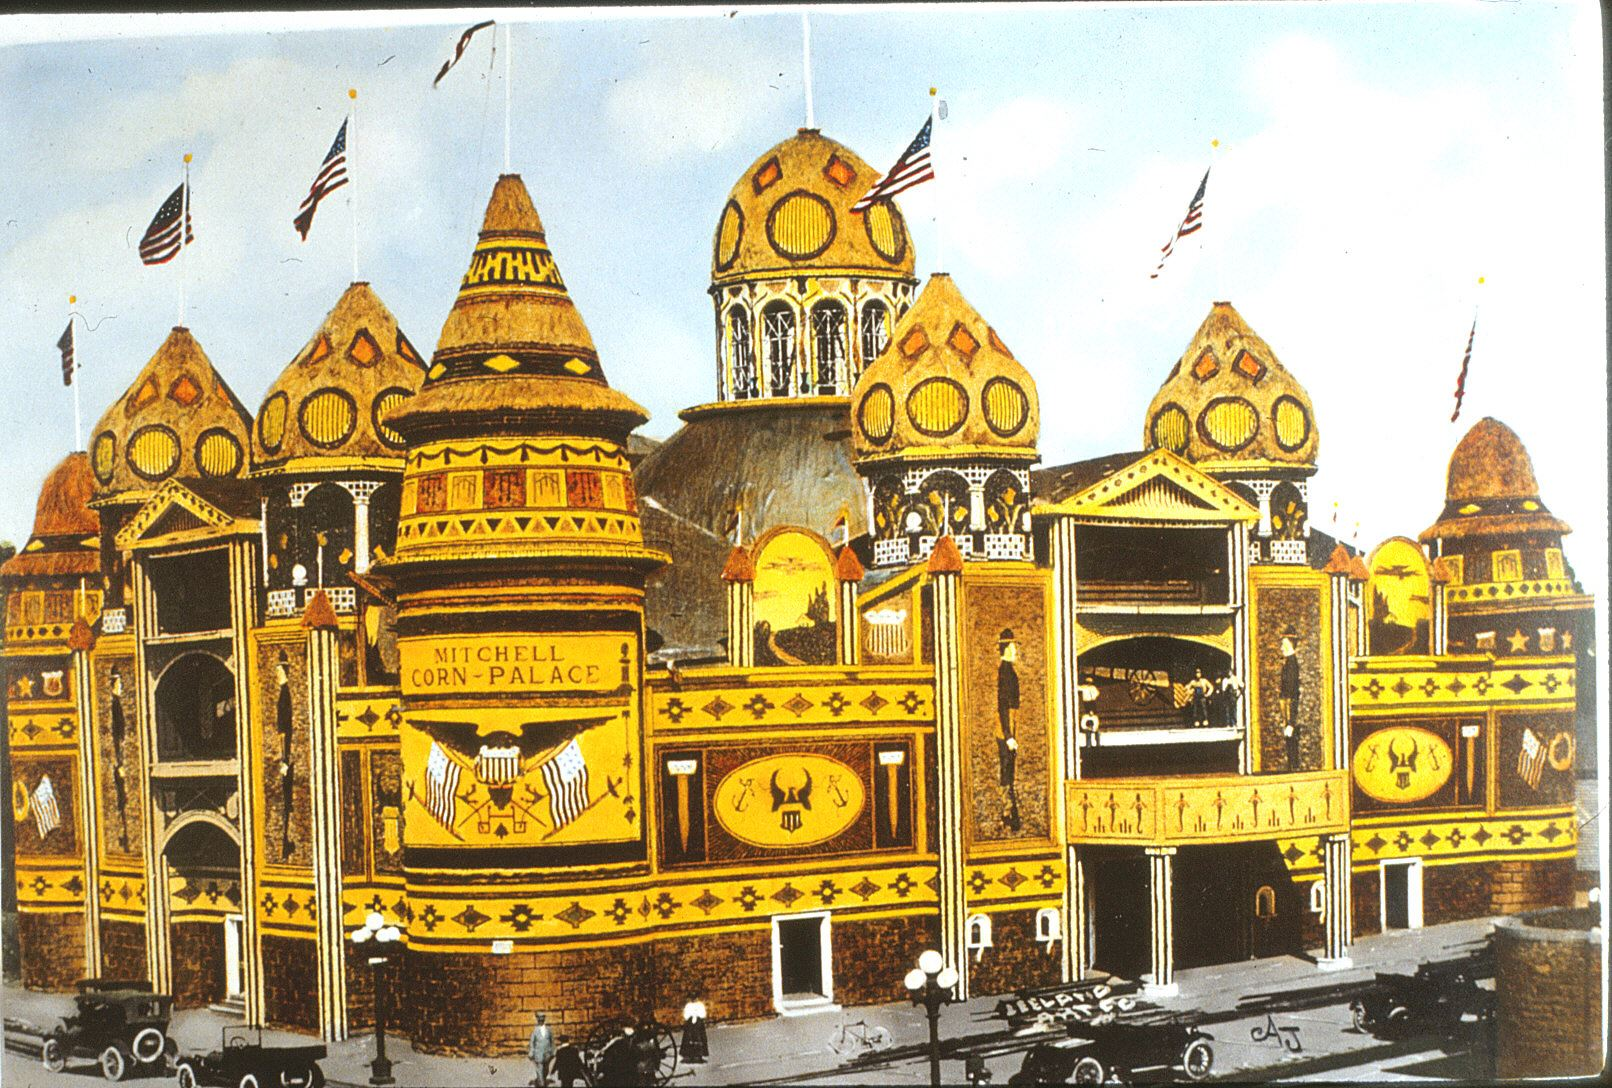 An image of the Corn Palace from 1916.